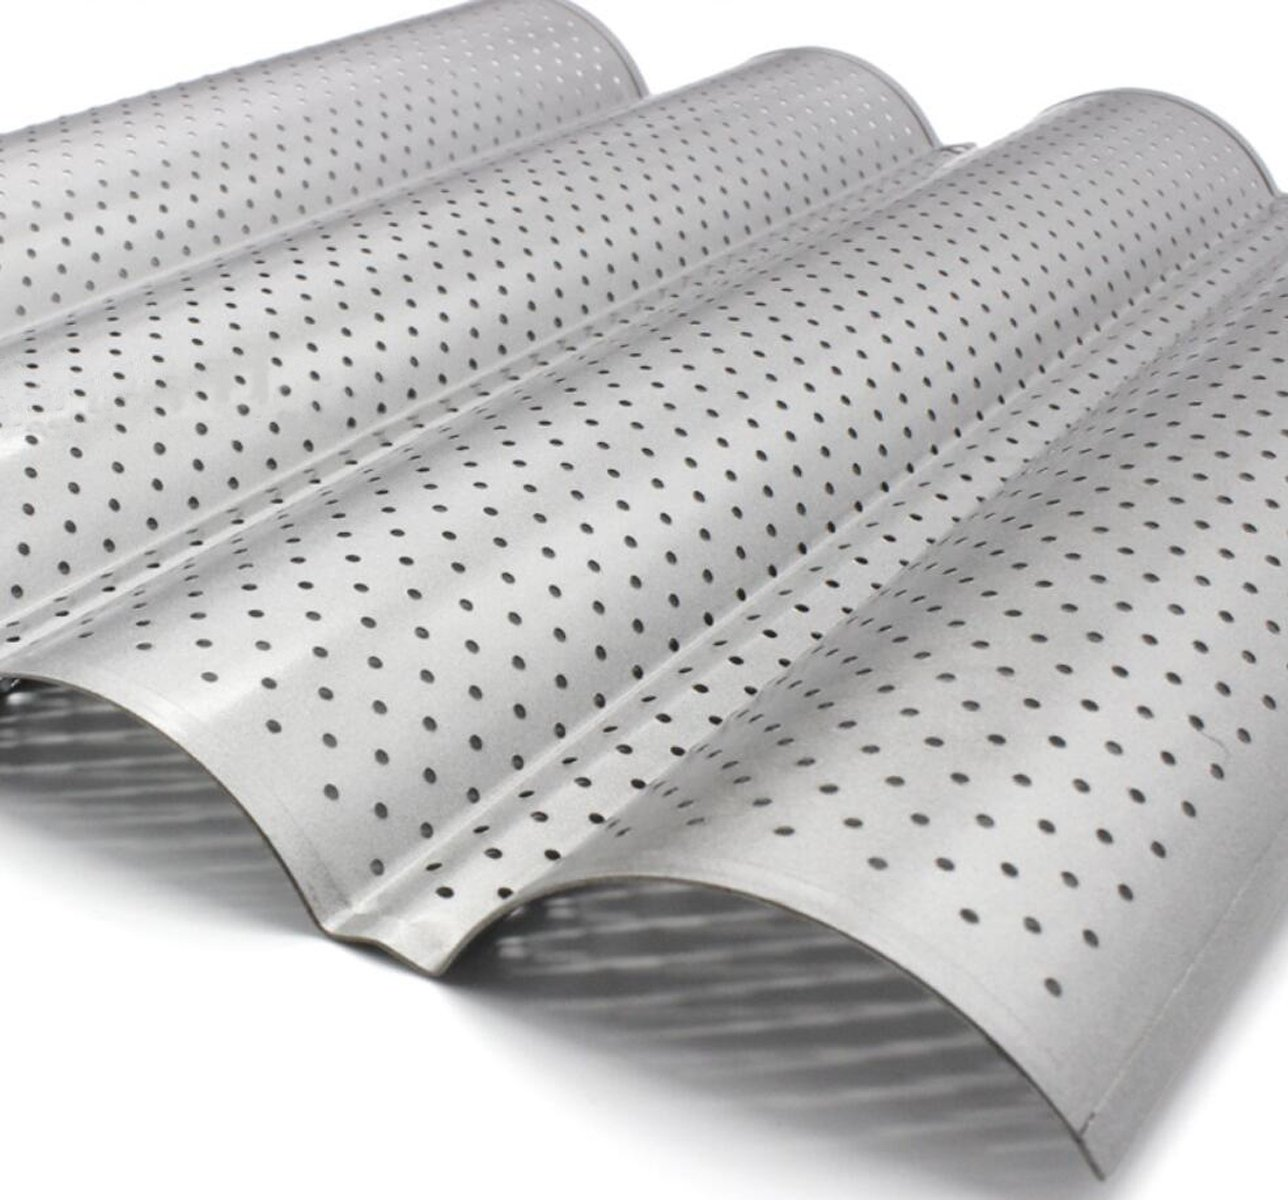 Four Groove French Bread Pan, KOOTIPS Non-stick Perforated Baguette Pan  French Italian Bread Pan Wave Loaf Bake Mold Board Subway Mold Tins Basket